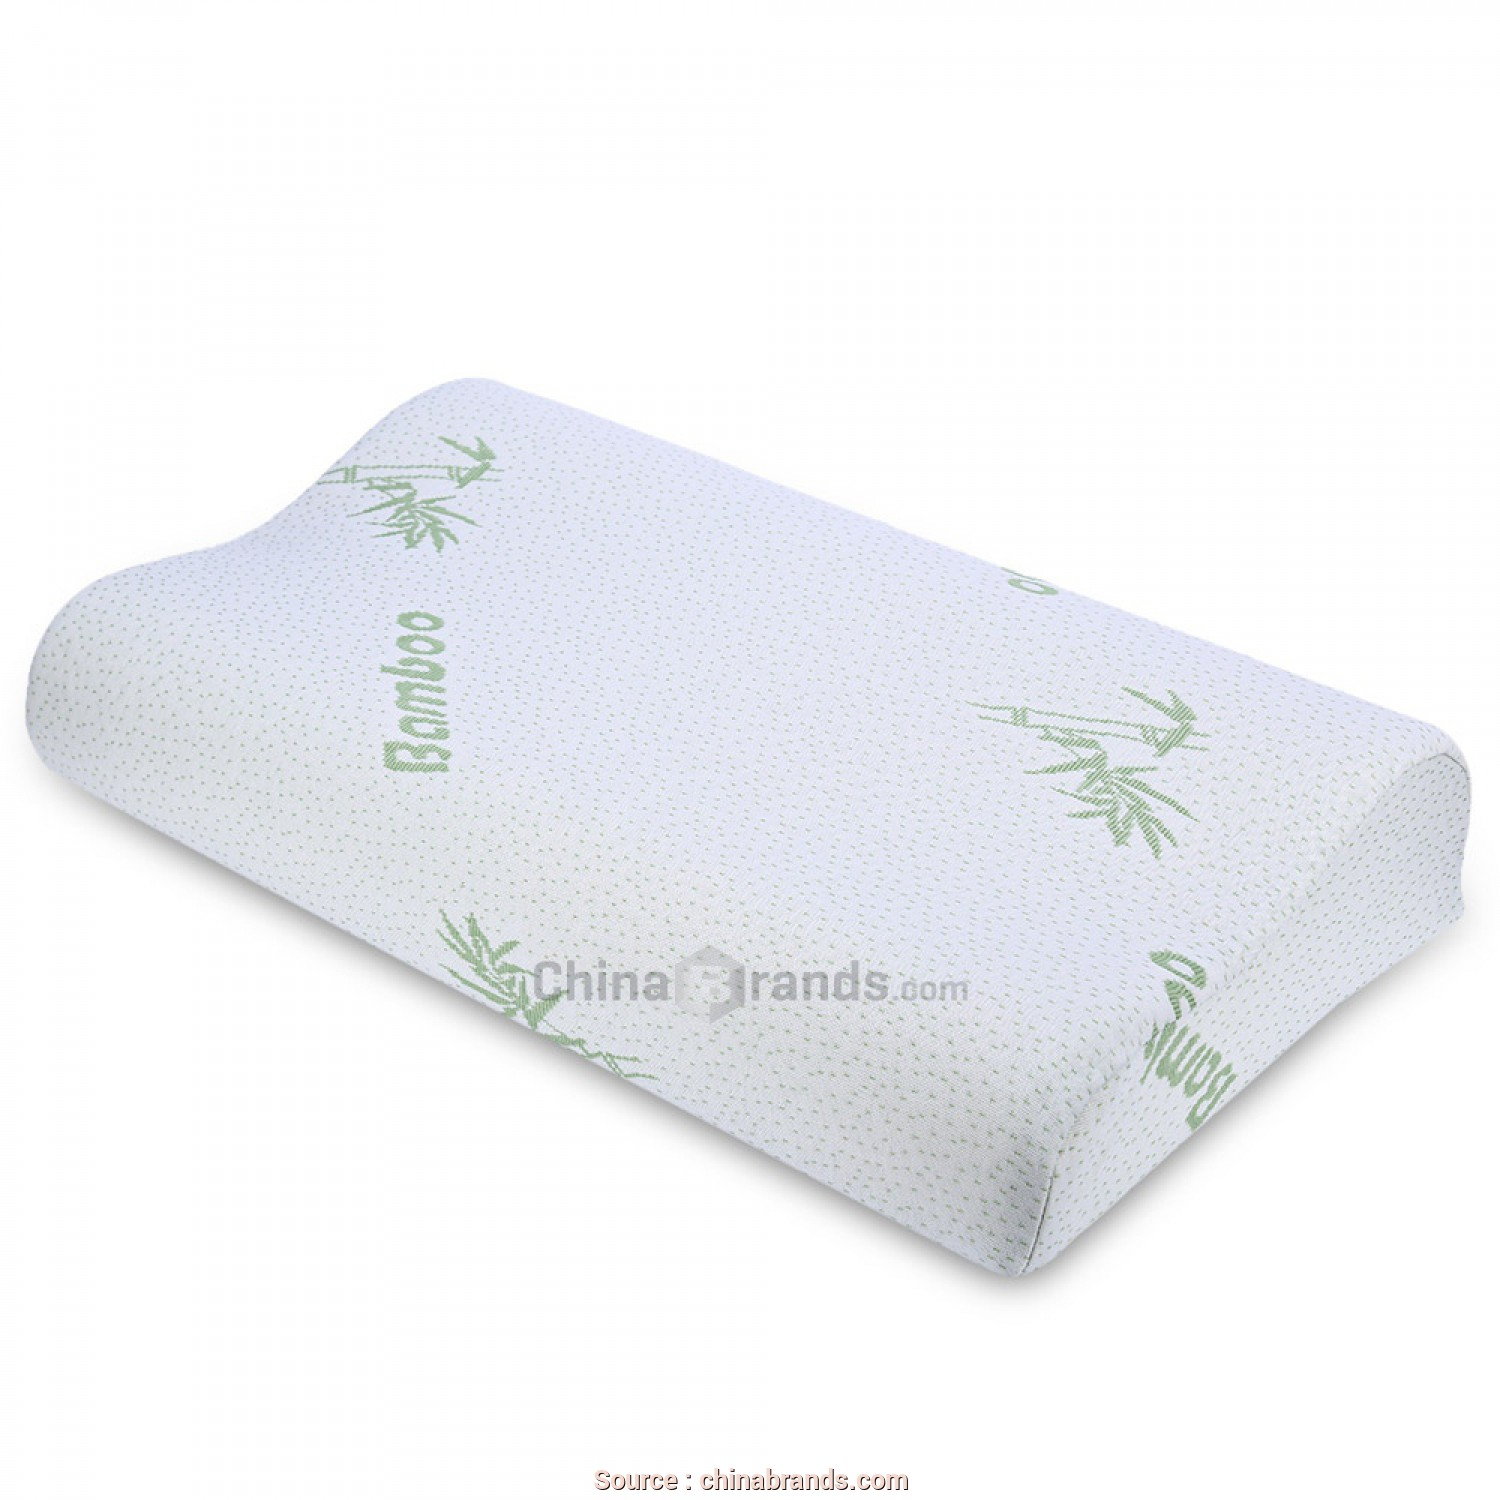 Cuscino In Memory Foam Ikea, Migliore Wholesale Bamboo Fiber Slow Rebound Health Care Memory Foam Neck Pillow, Boost Your Business, Chinabrands.Com, Wholesale Websites